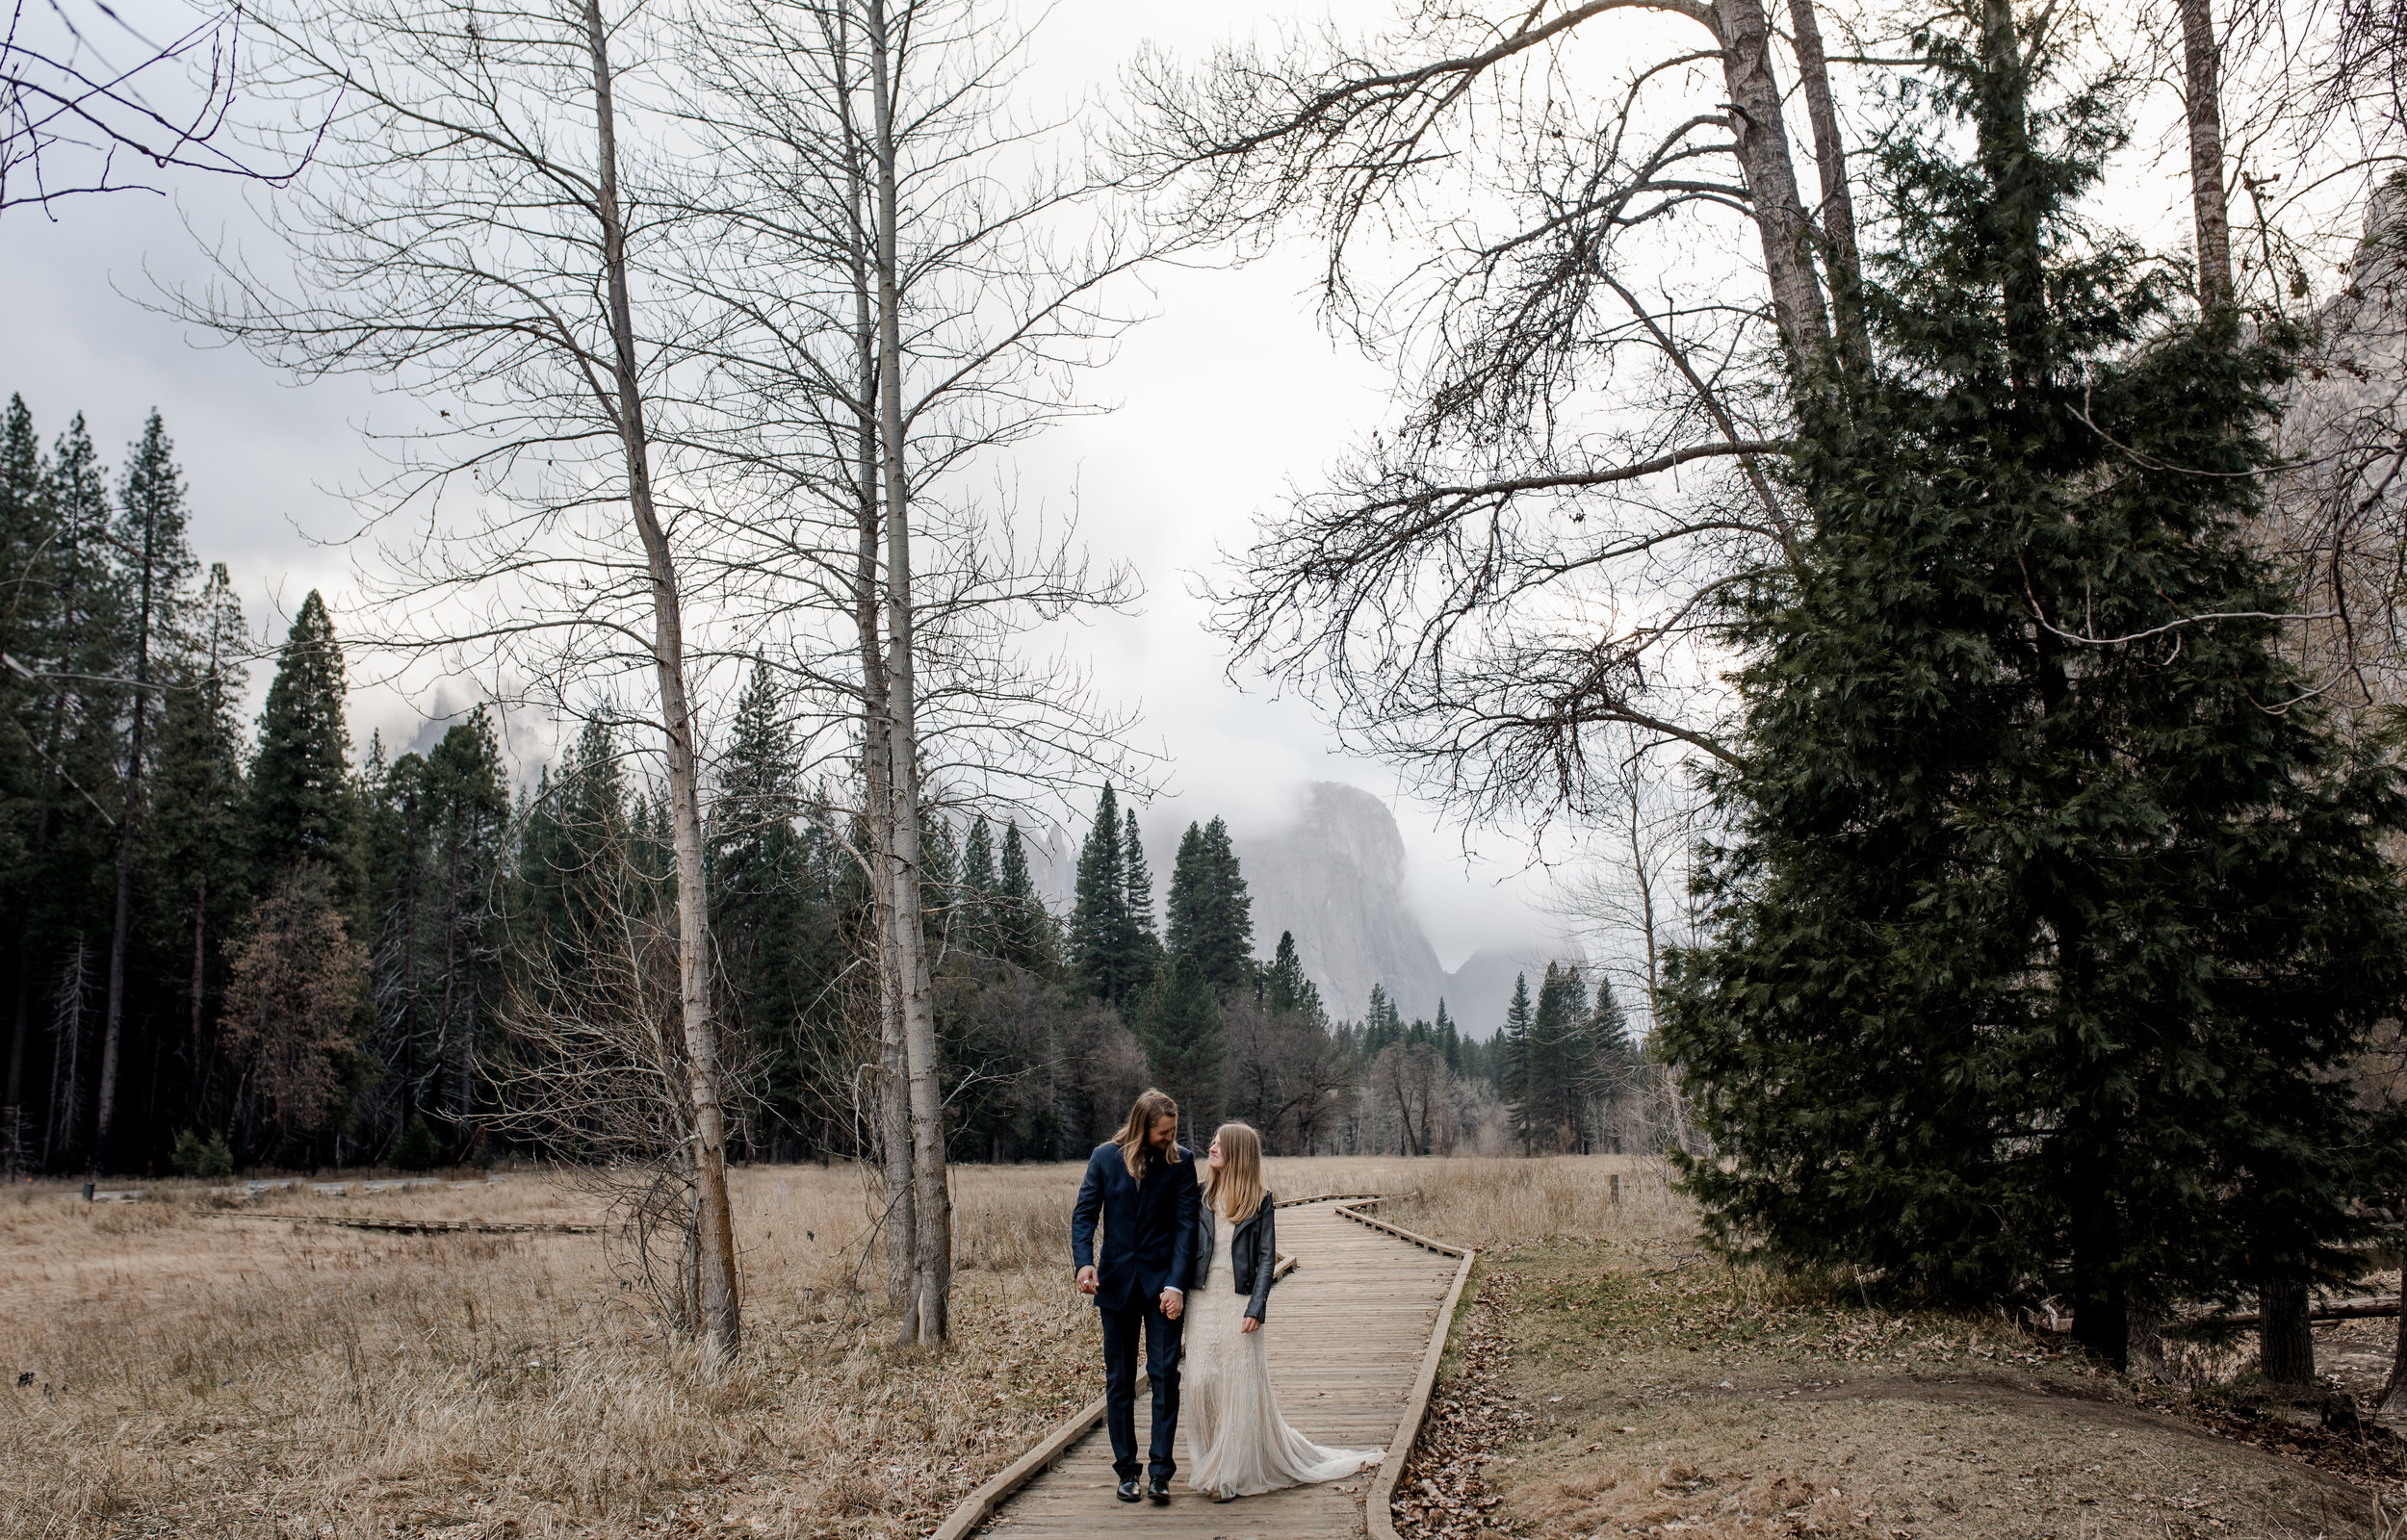 nicole-daacke-photography-yousemite-national-park-elopement-photographer-winter-cloud-moody-elope-inspiration-yosemite-valley-tunnel-view-winter-cloud-fog-weather-wedding-photos-86.jpg